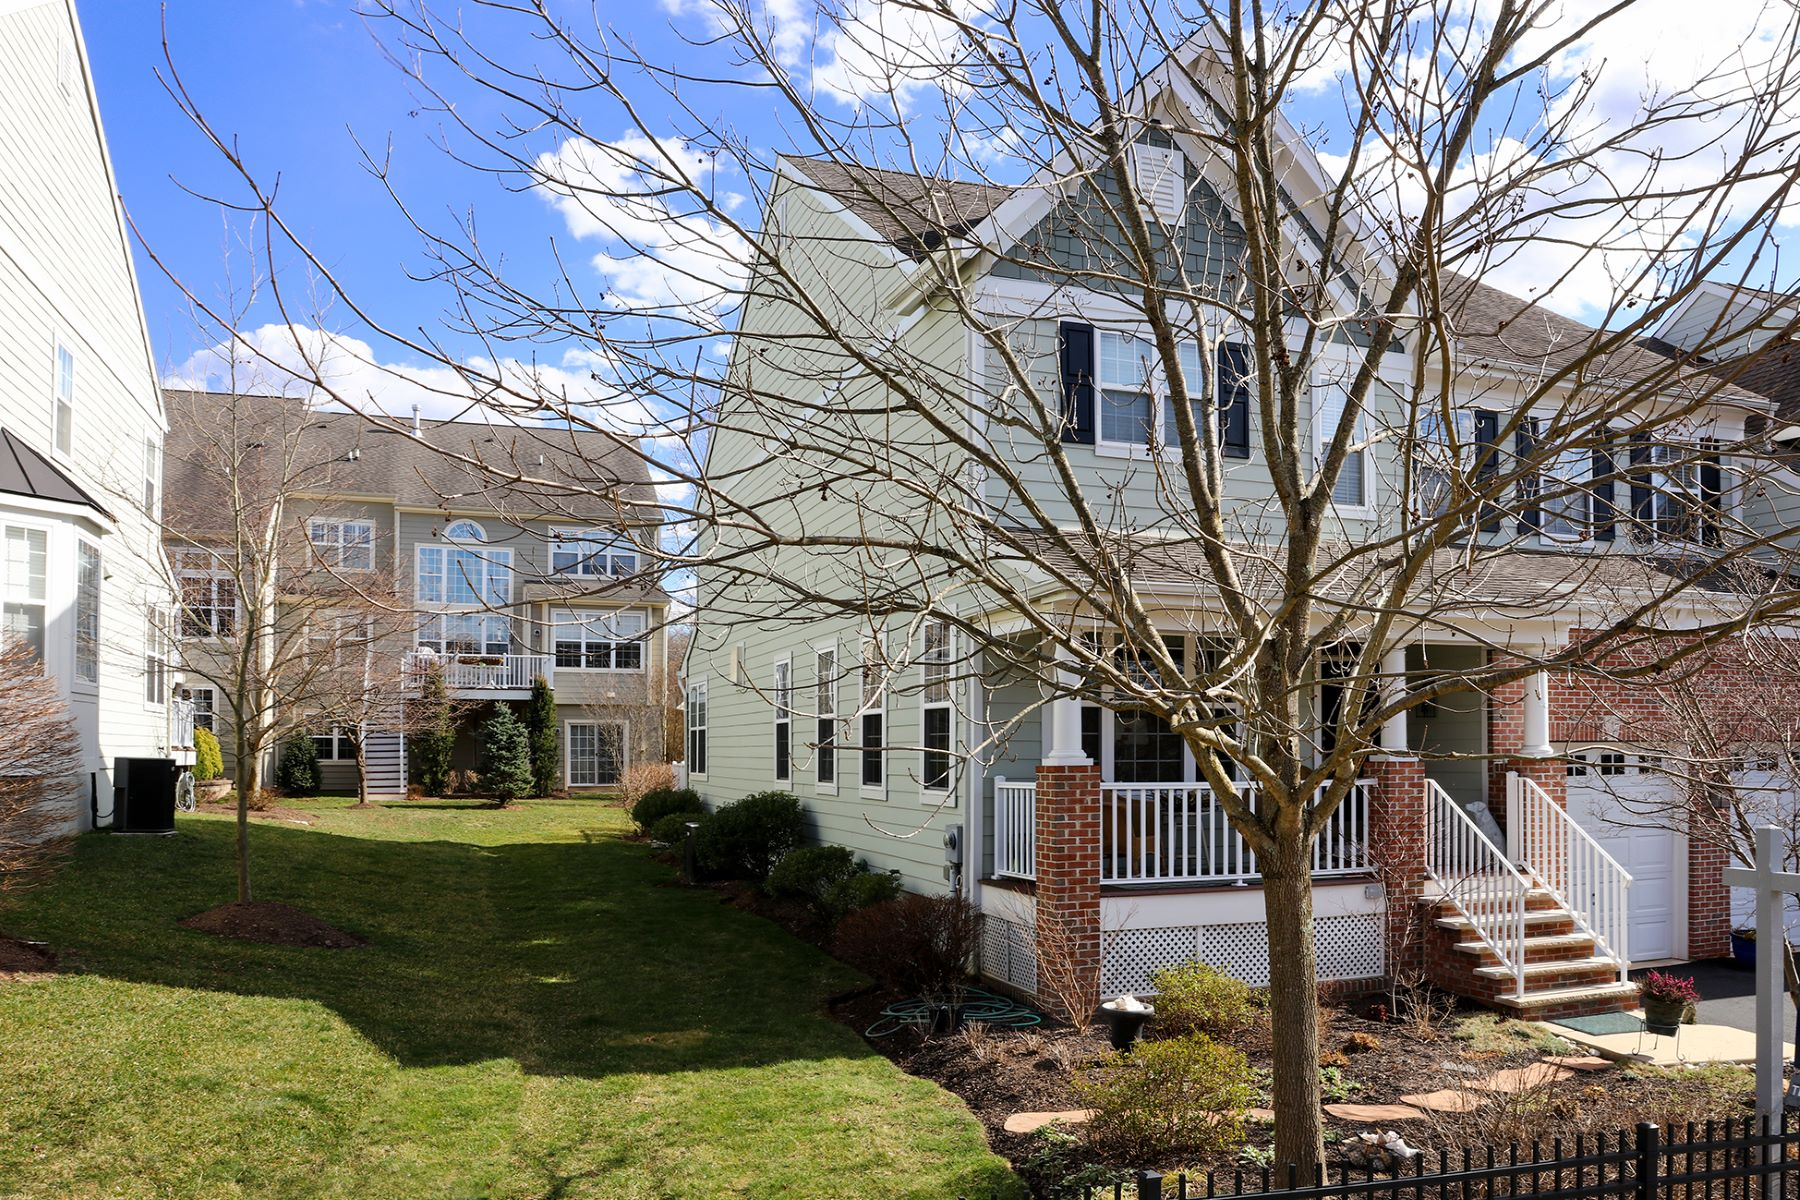 Townhouse for Sale at Easy To Enjoy 513 Titus Road Lambertville, New Jersey, 08530 United States